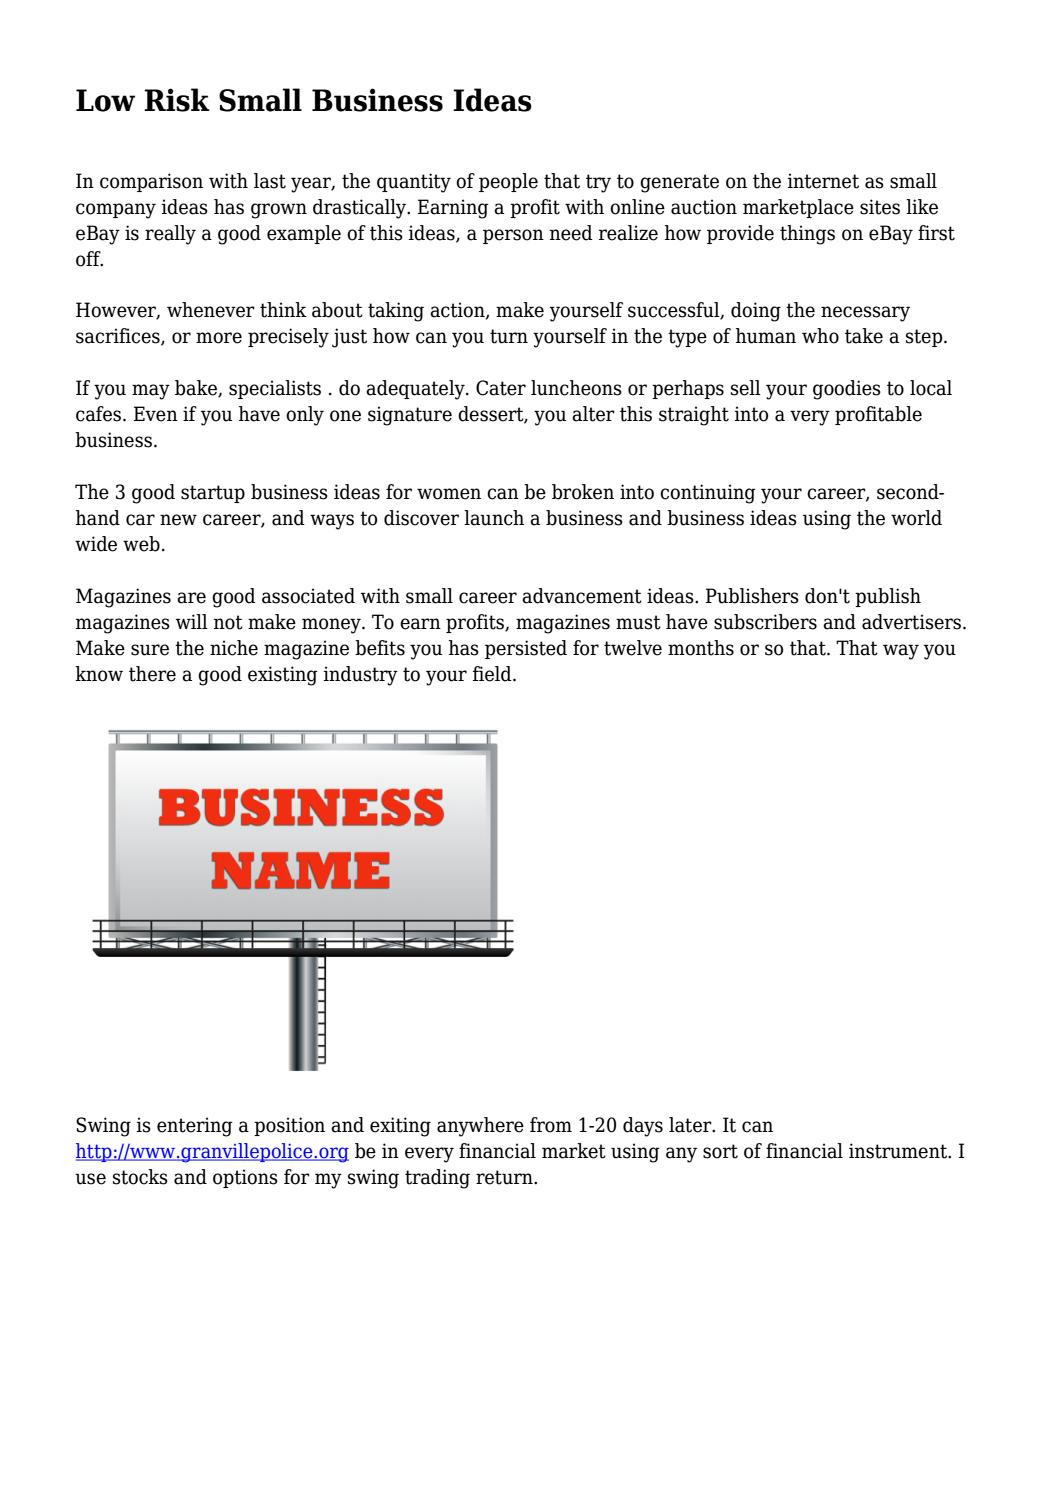 Low Risk Small Business Ideas By Airmagazinefield Issuu